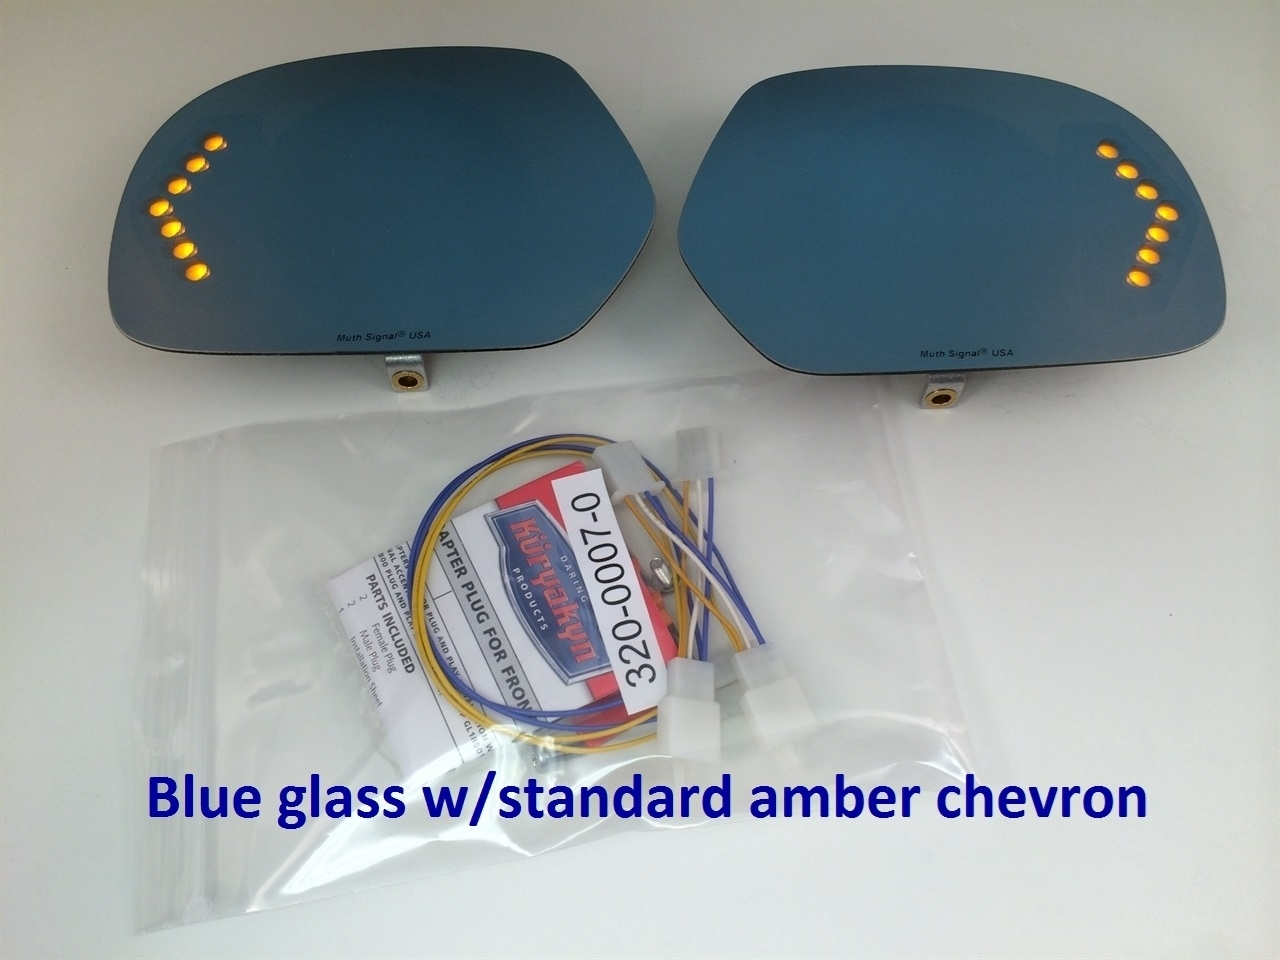 Blue glass w/standard amber chevron